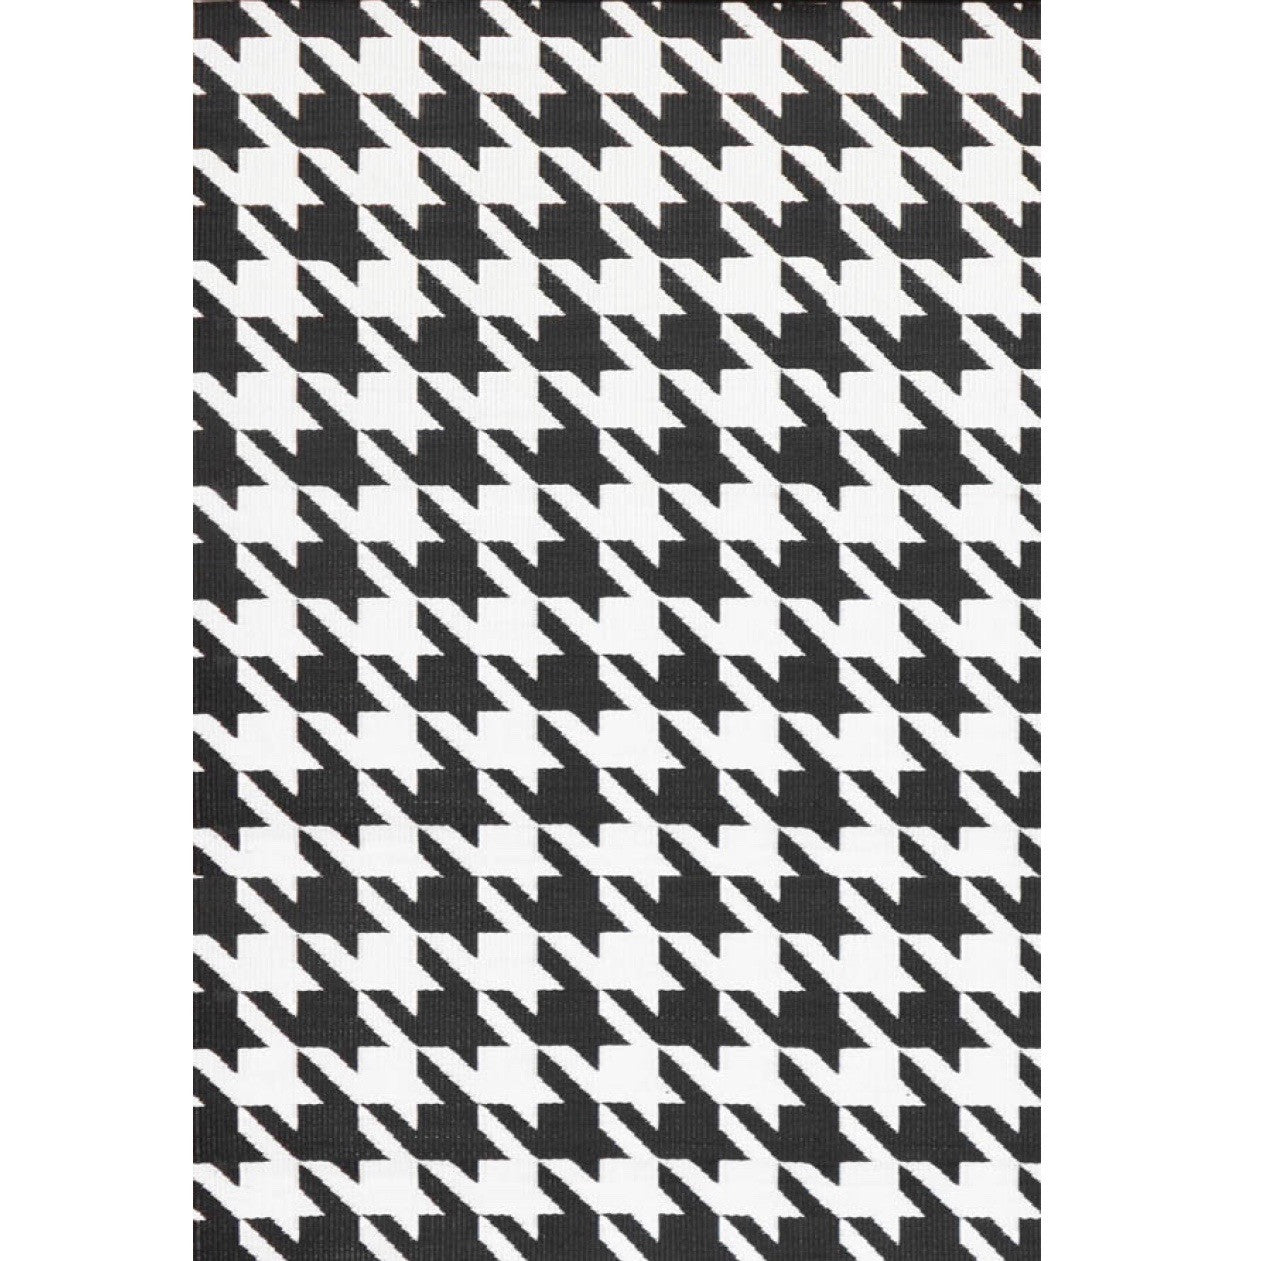 Mad Mats Outdoor Carpet Houndstooth, MMAT-Mad Mats, Putti Fine Furnishings